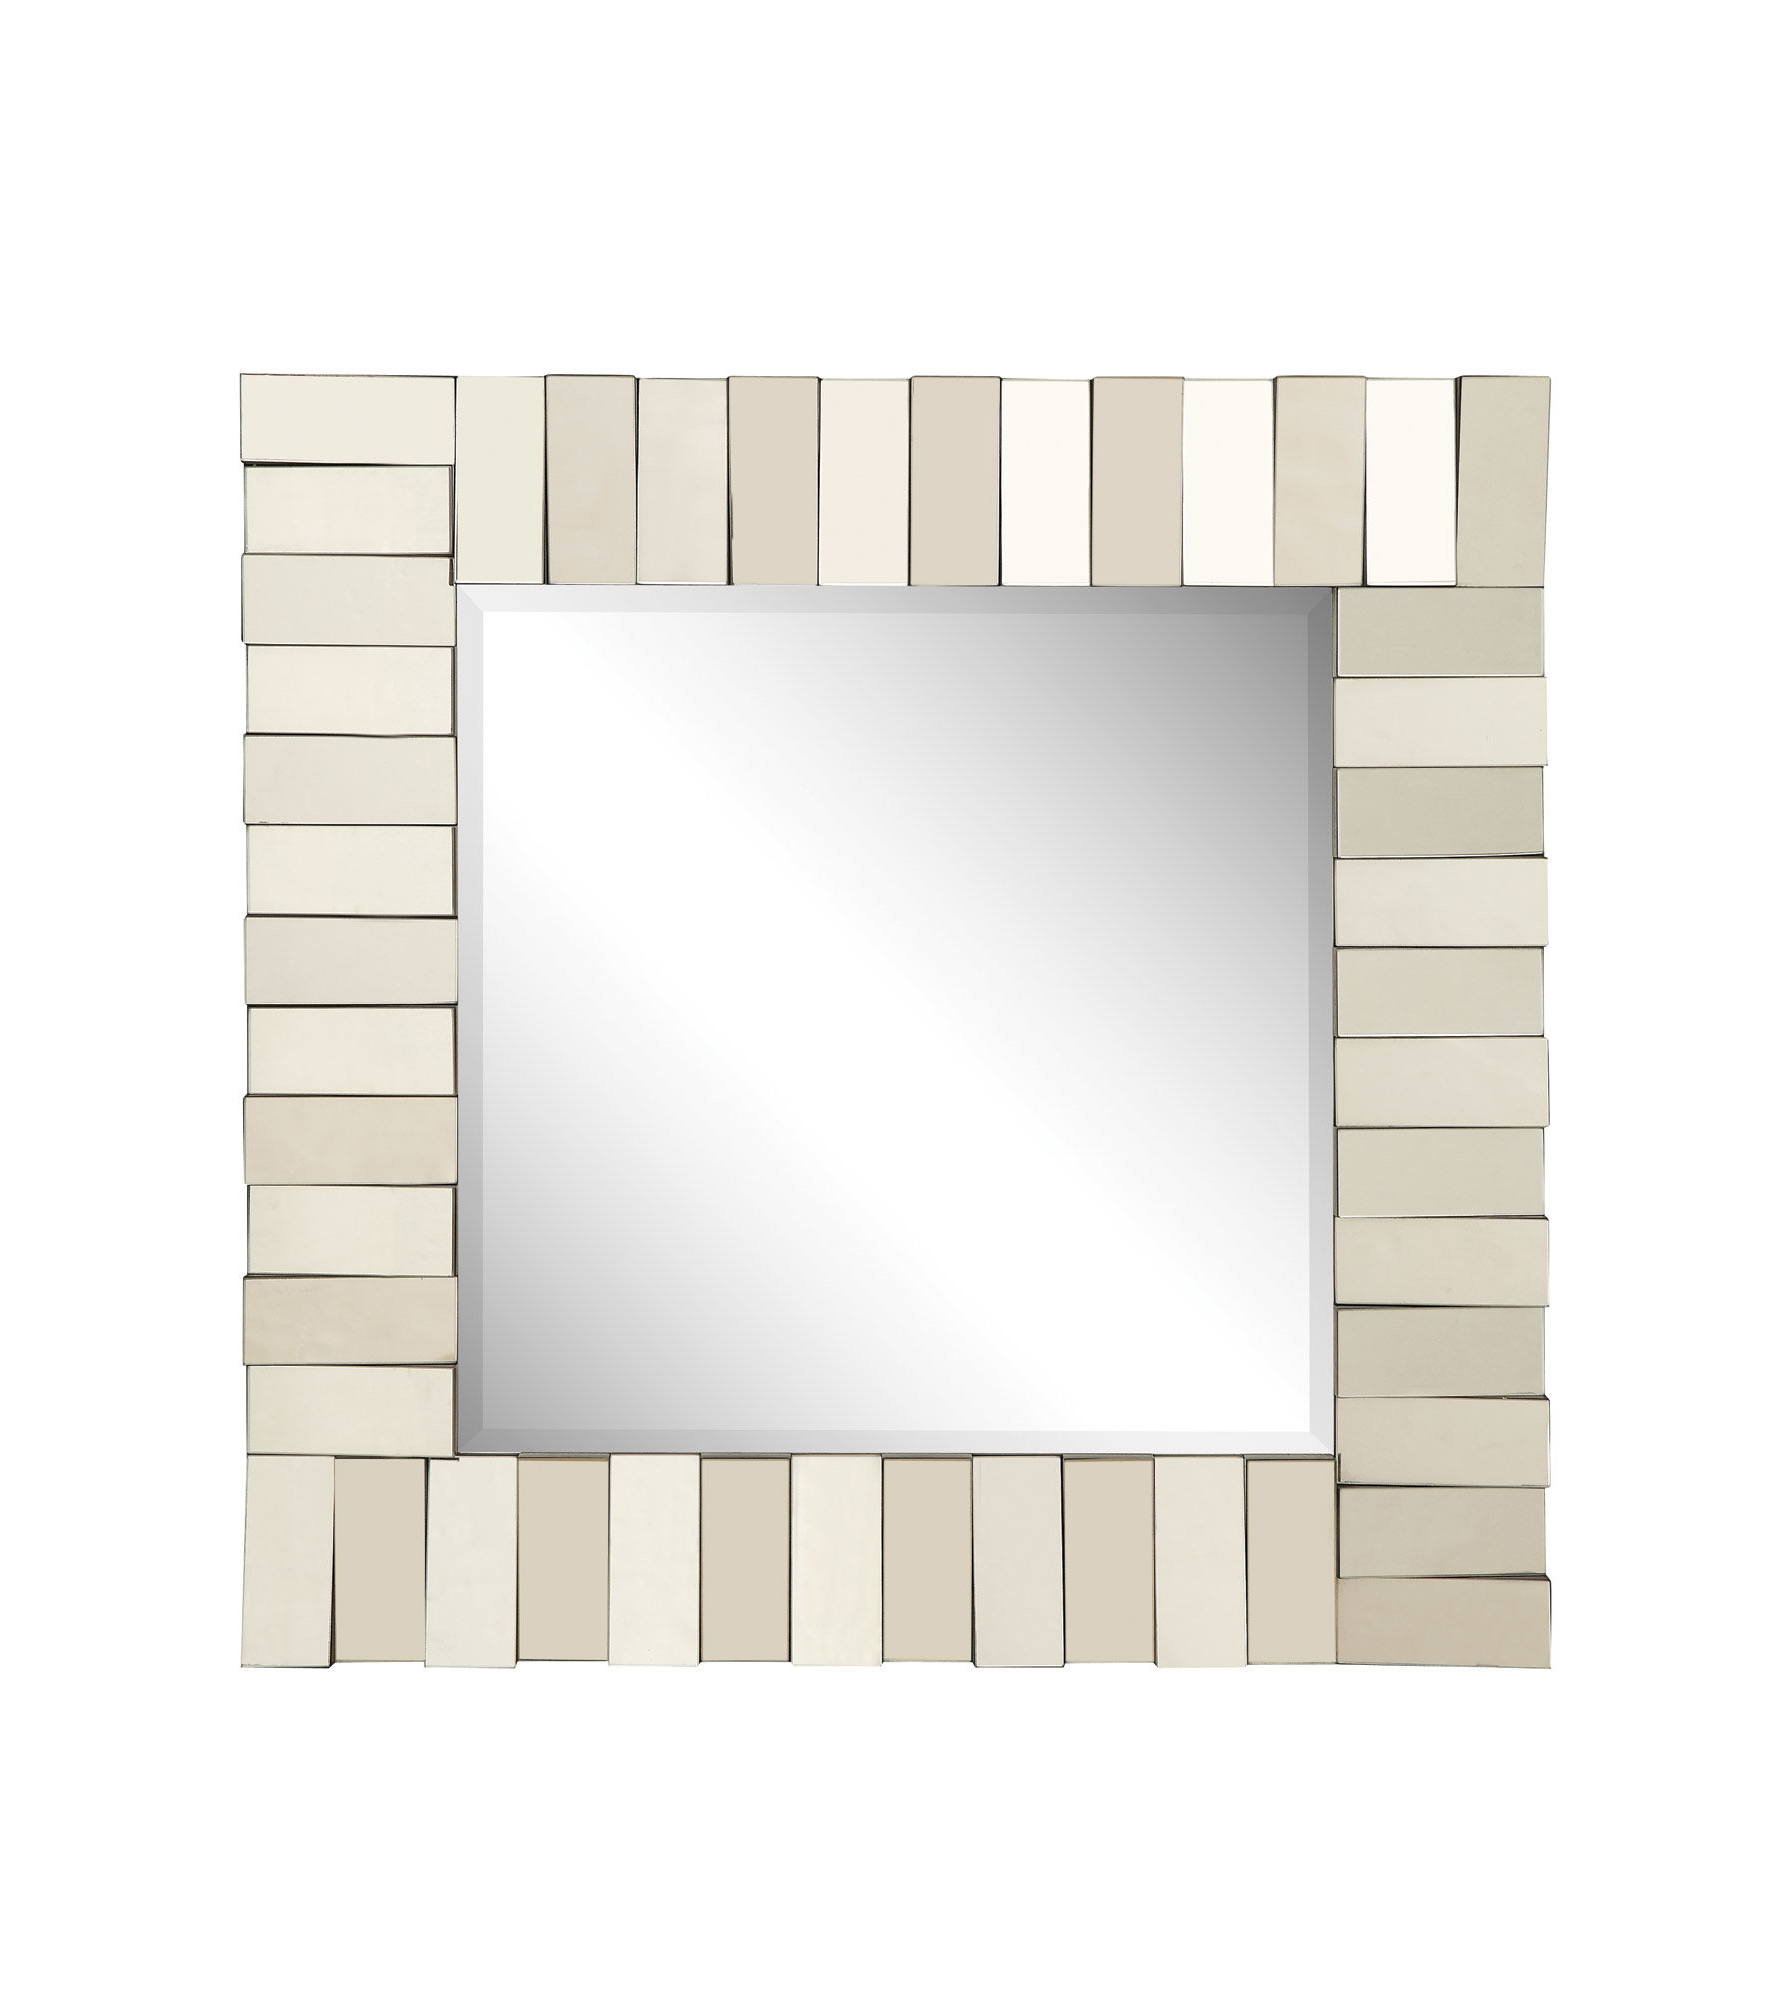 Most Recently Released Modern & Contemporary Beveled Wall Mirror Intended For Modern & Contemporary Beveled Wall Mirrors (View 16 of 20)